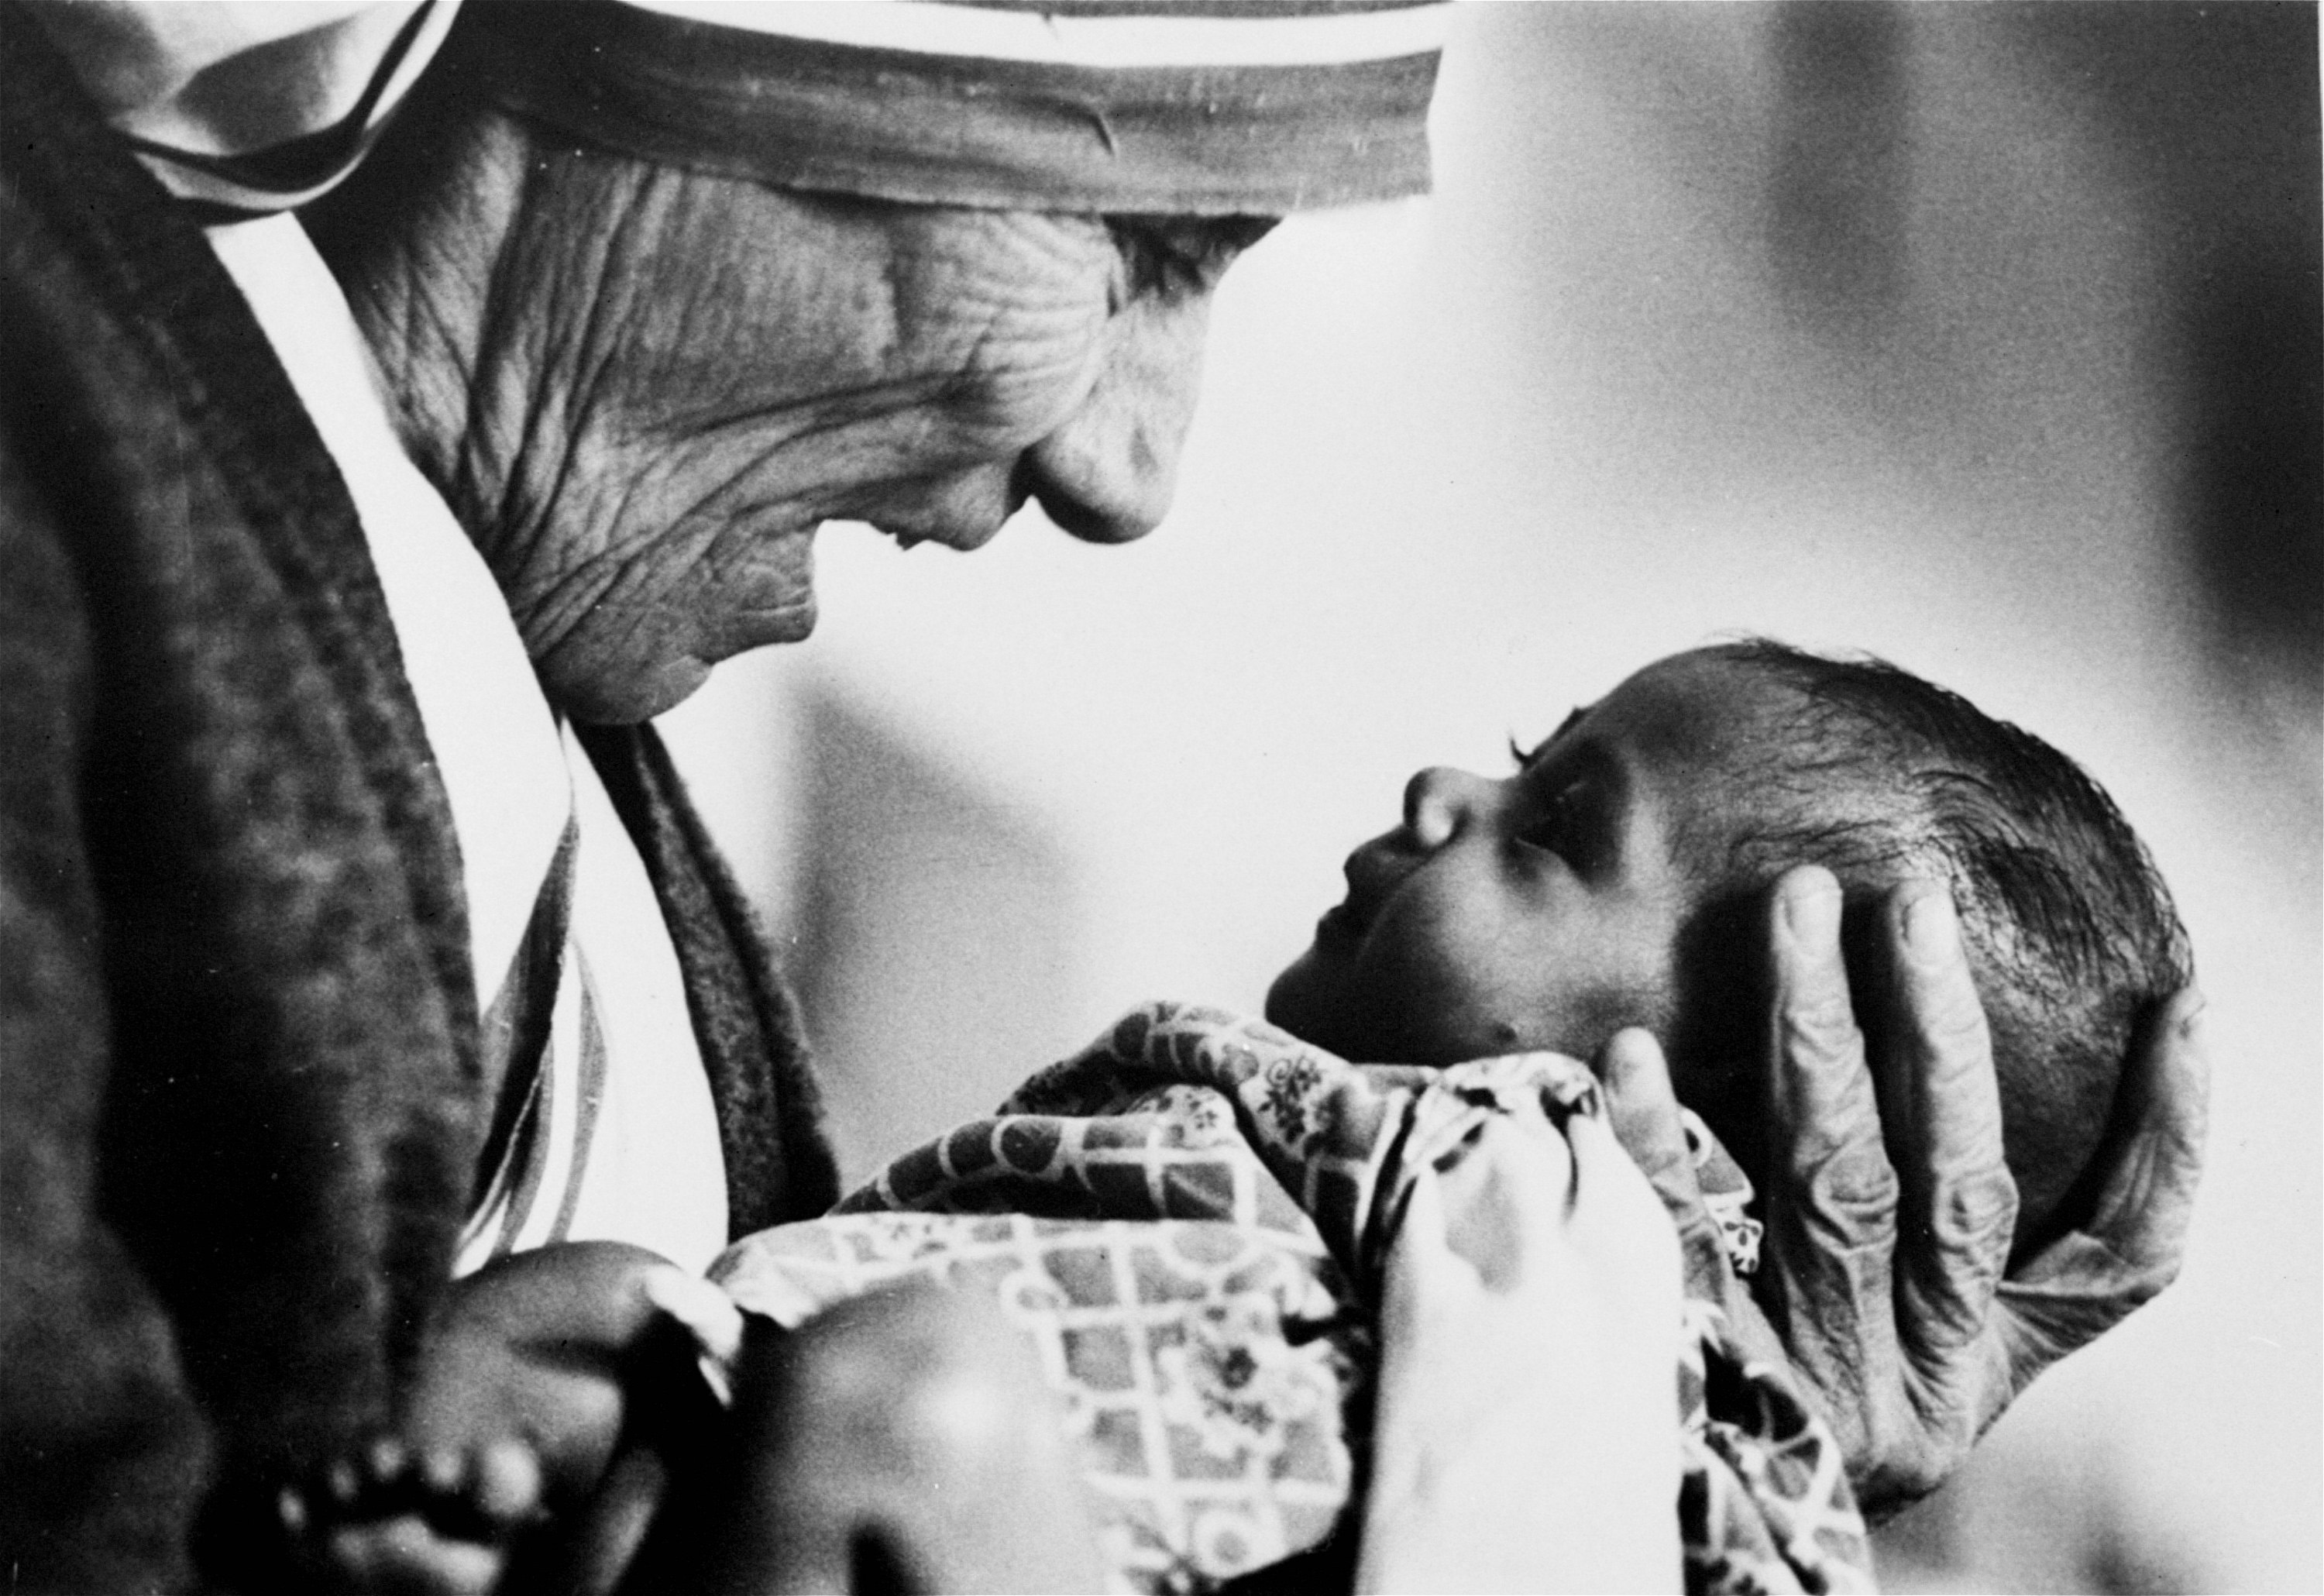 Mother Teresa, head of the Missionaries of Charity order, cradles an armless baby girl at her order's orphanage in what was then known as Calcutta, India, in 1978.